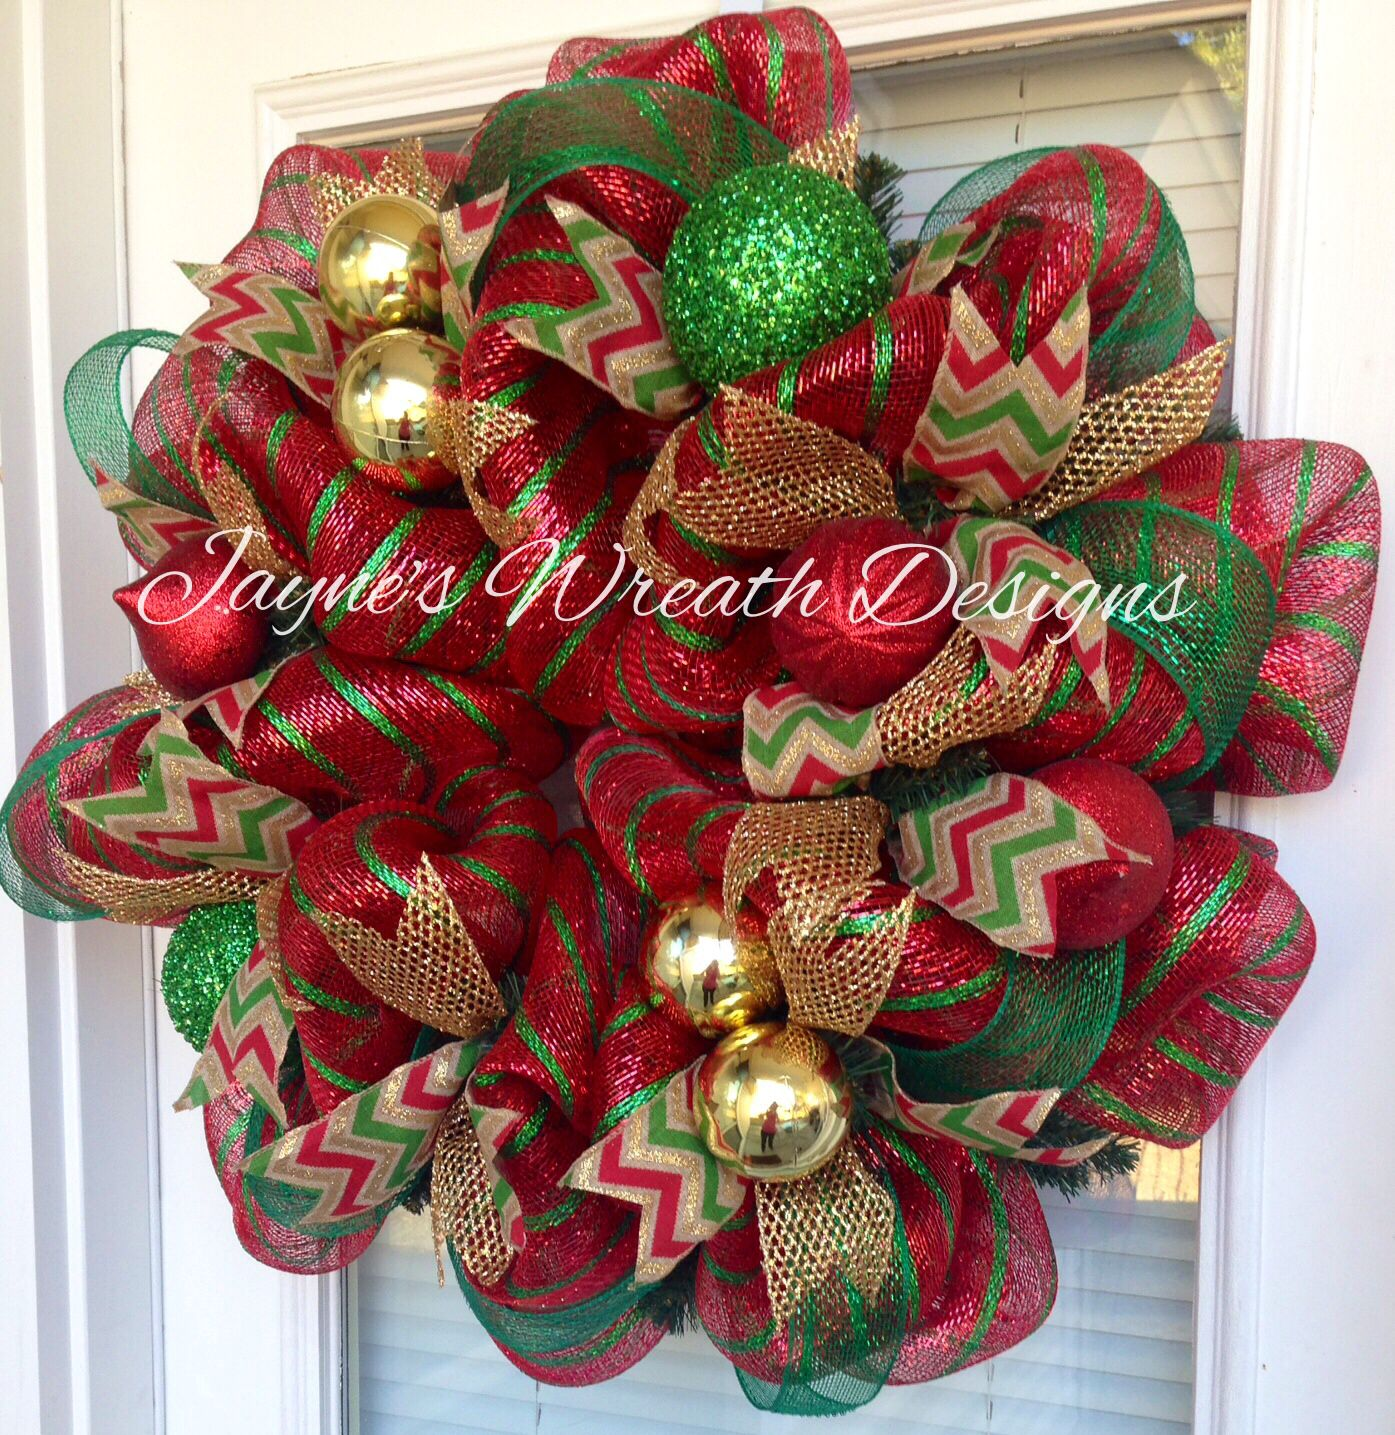 Deco mesh Christmas wreath in tradition green red and gold with